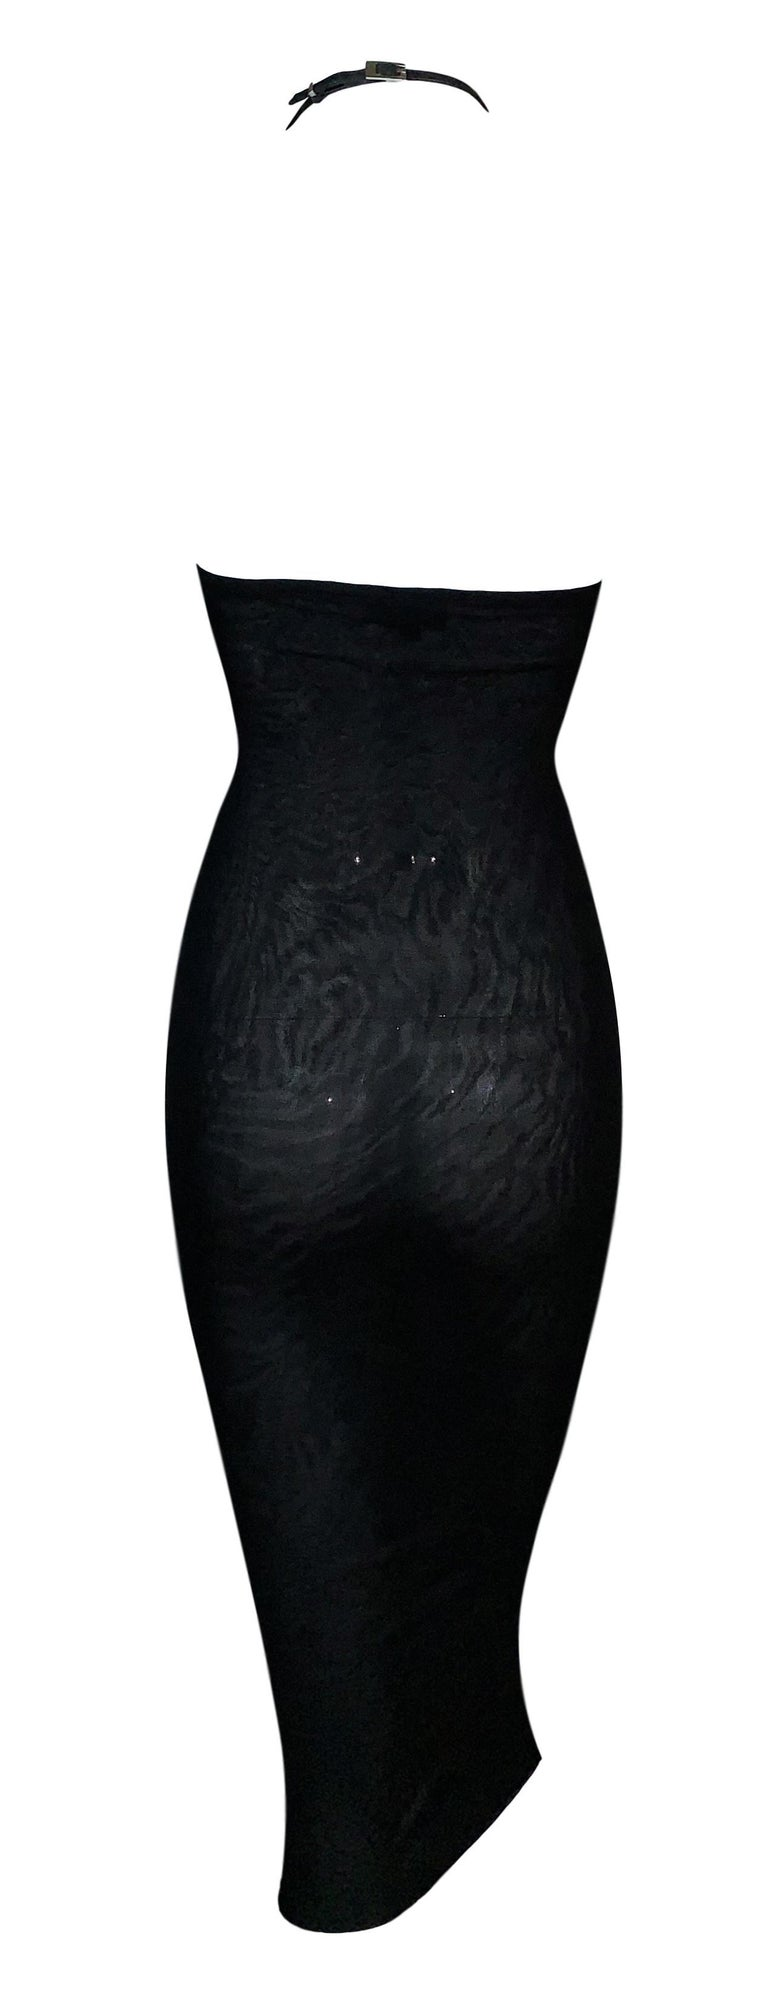 S/S 1998 Gucci Tom Ford Sheer Black Bodycon Leather Choker Wiggle Dress In Good Condition For Sale In Yukon, OK